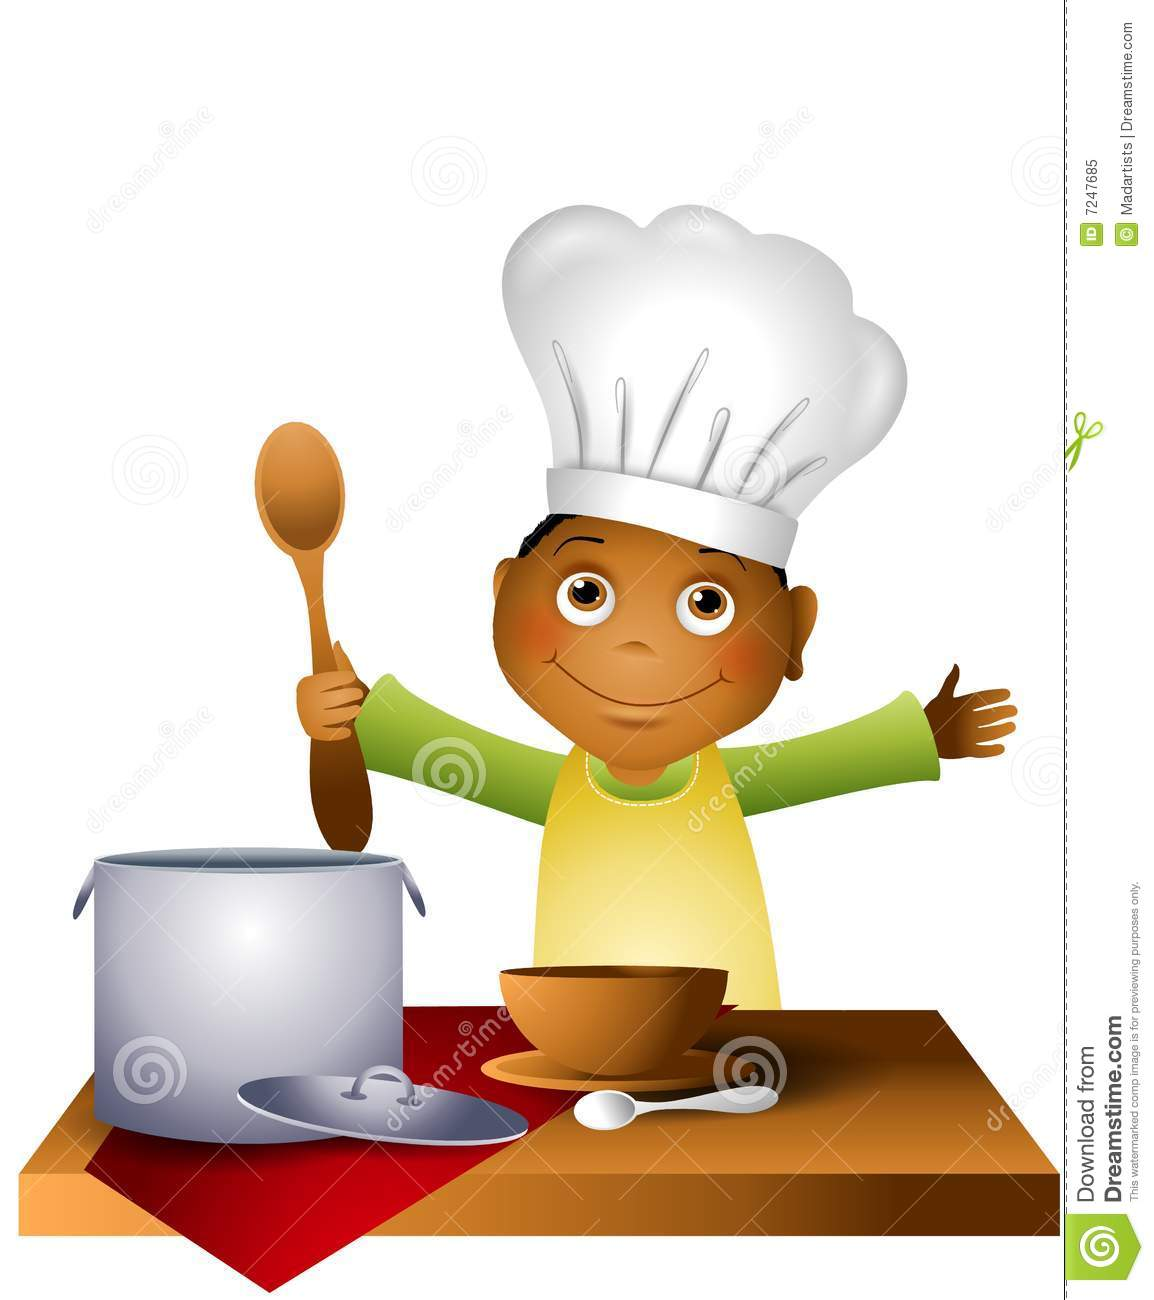 Child cooking clipart vector royalty free Kids Cooking Clipart   Clipart Panda - Free Clipart Images vector royalty free